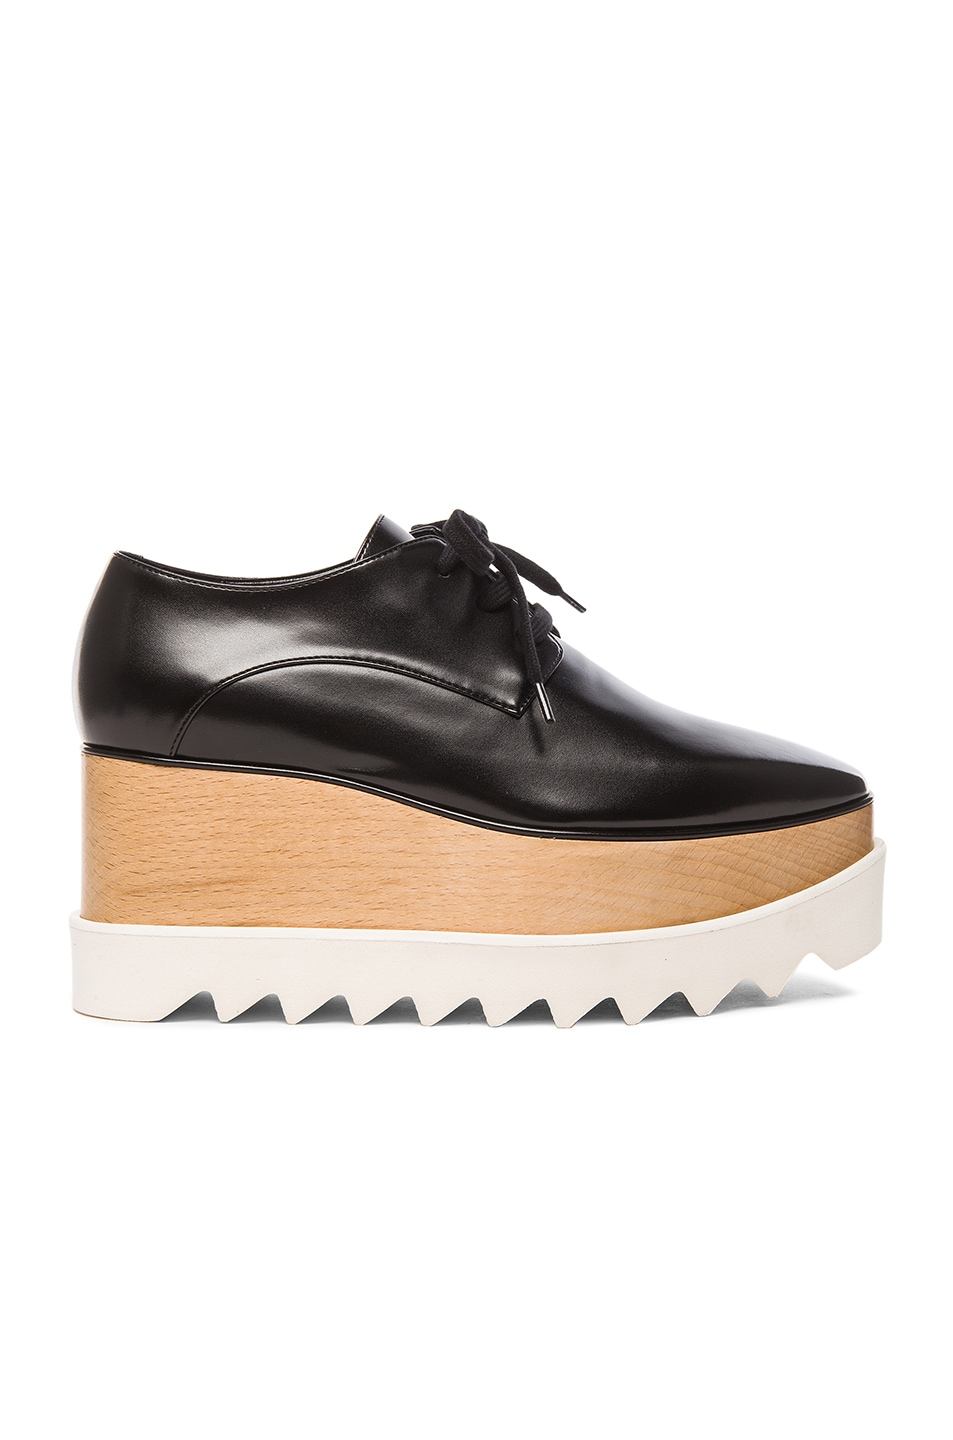 stella mccartney elyse platform shoes in black fwrd